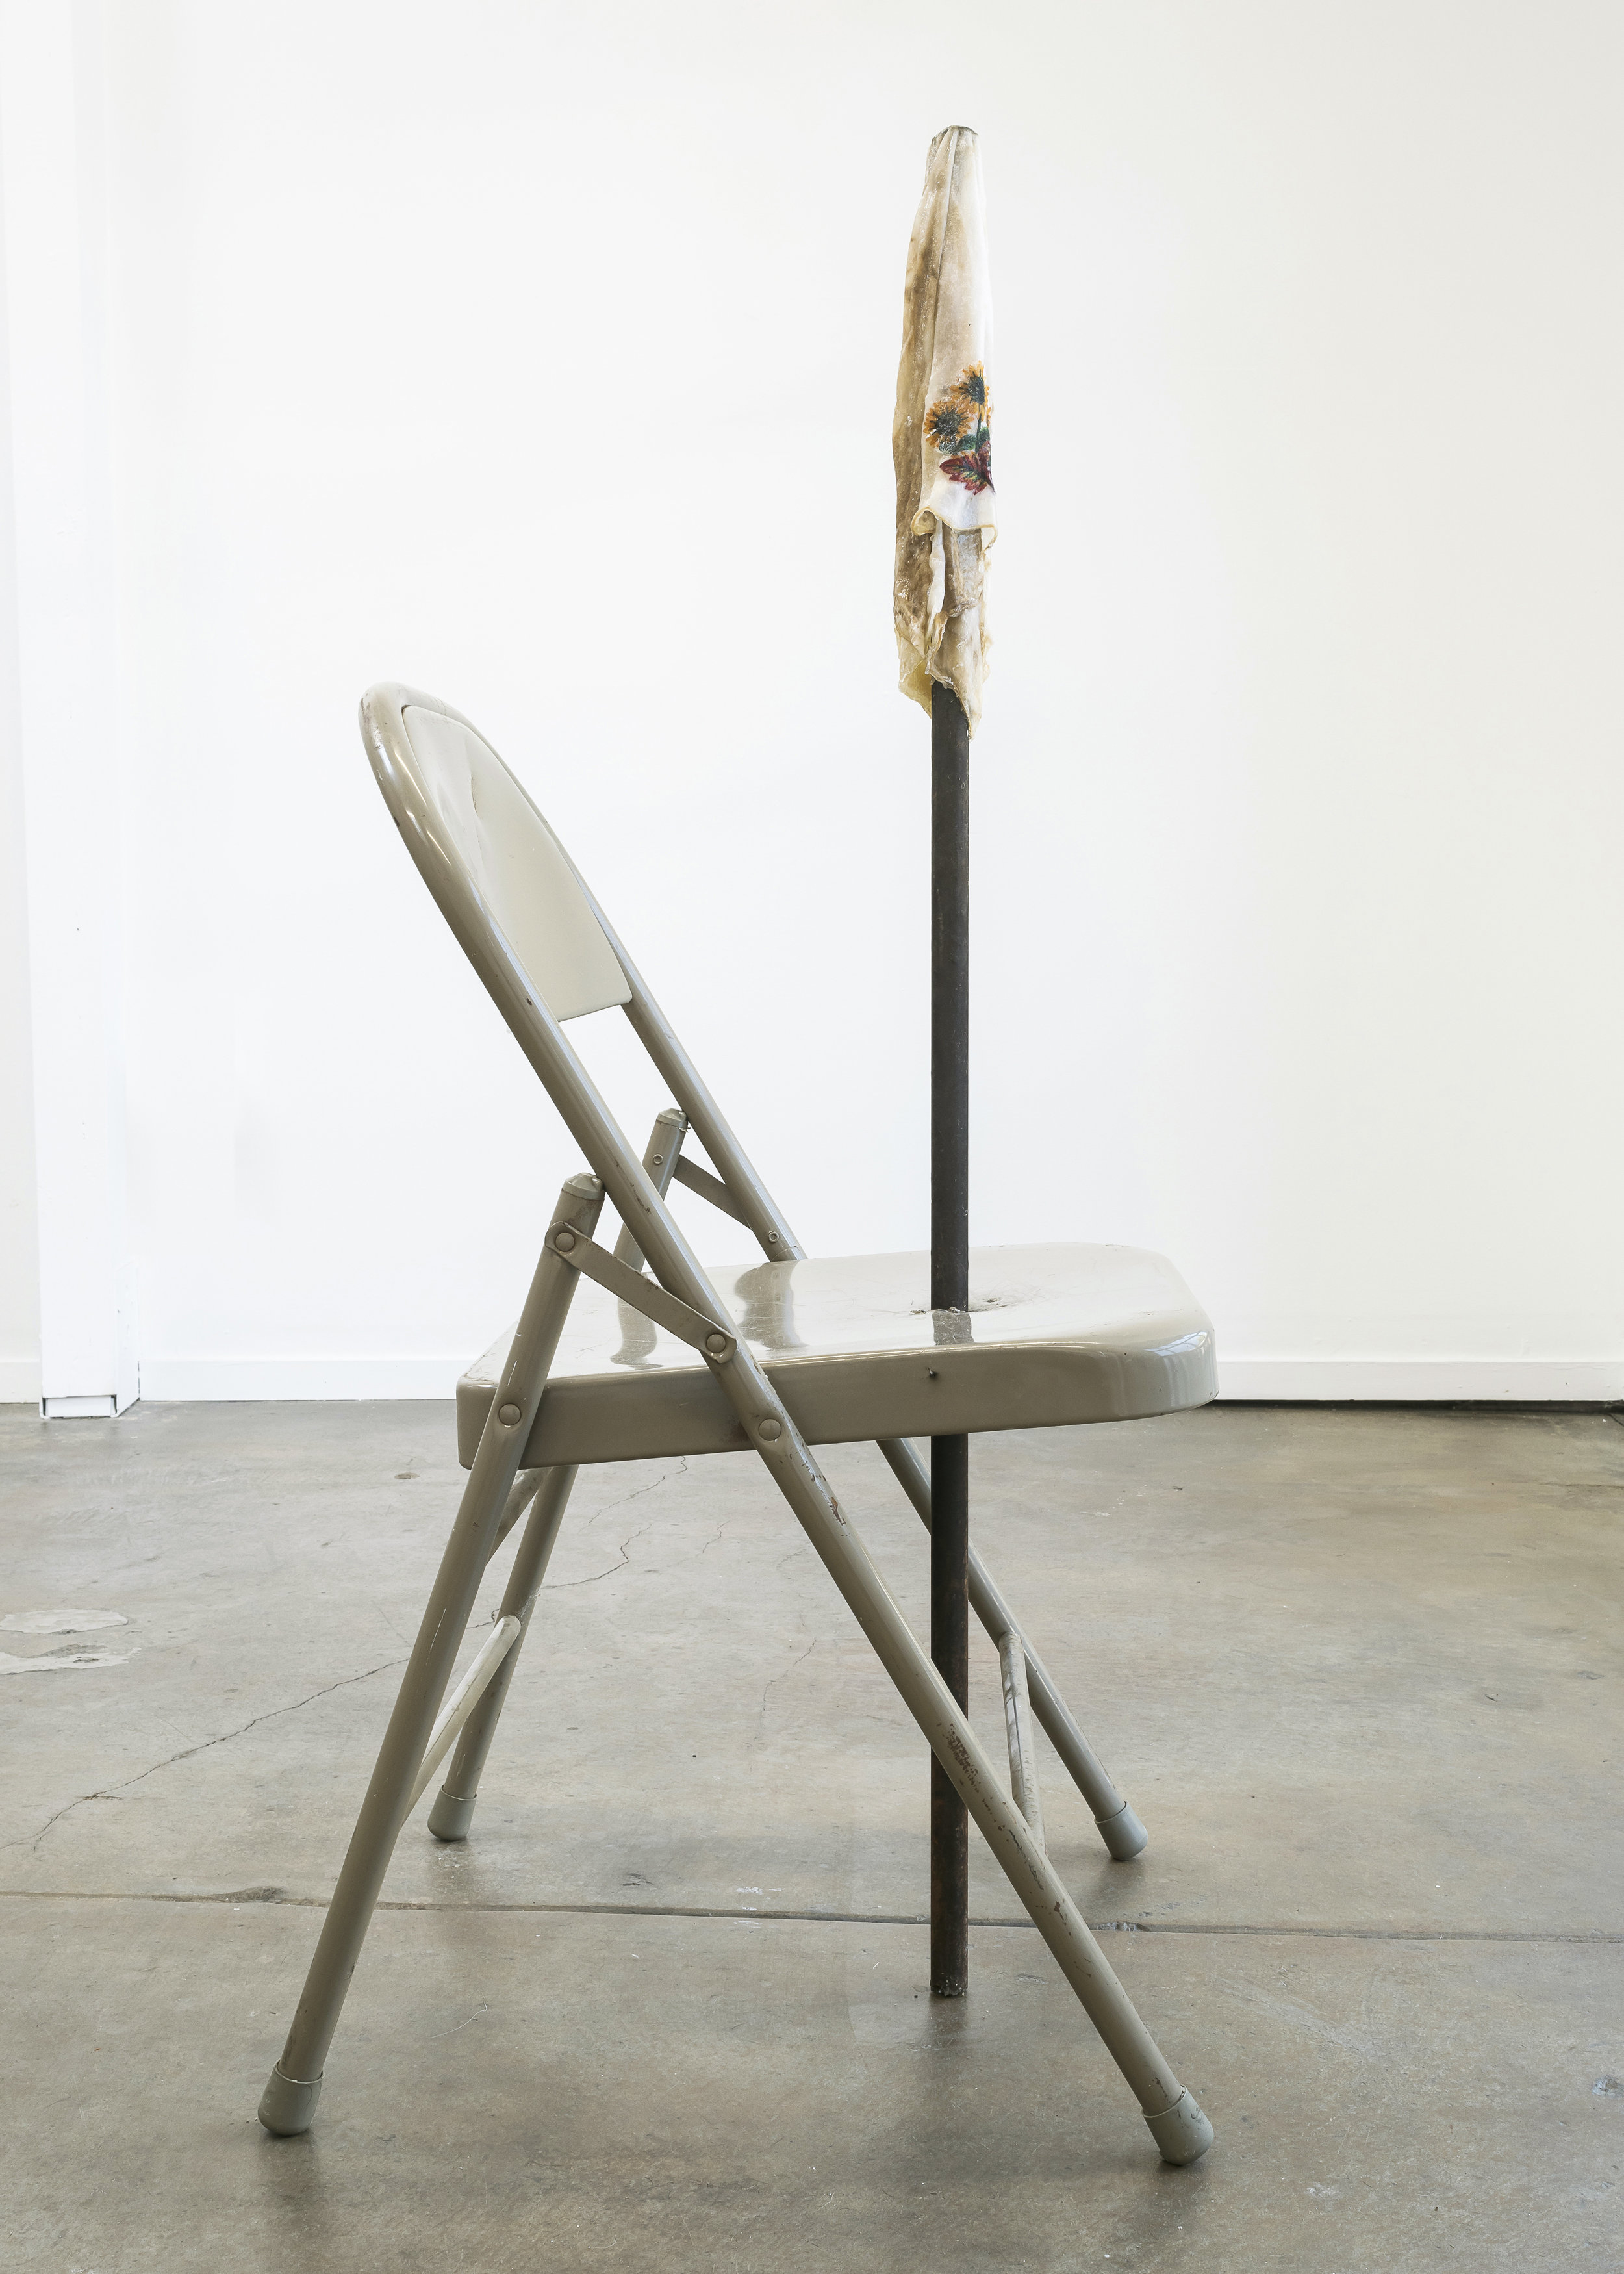 Bri Williams,  Scars that heal and don't fester , 2018. Metal fold chair, metal pole, handkerchief, soap